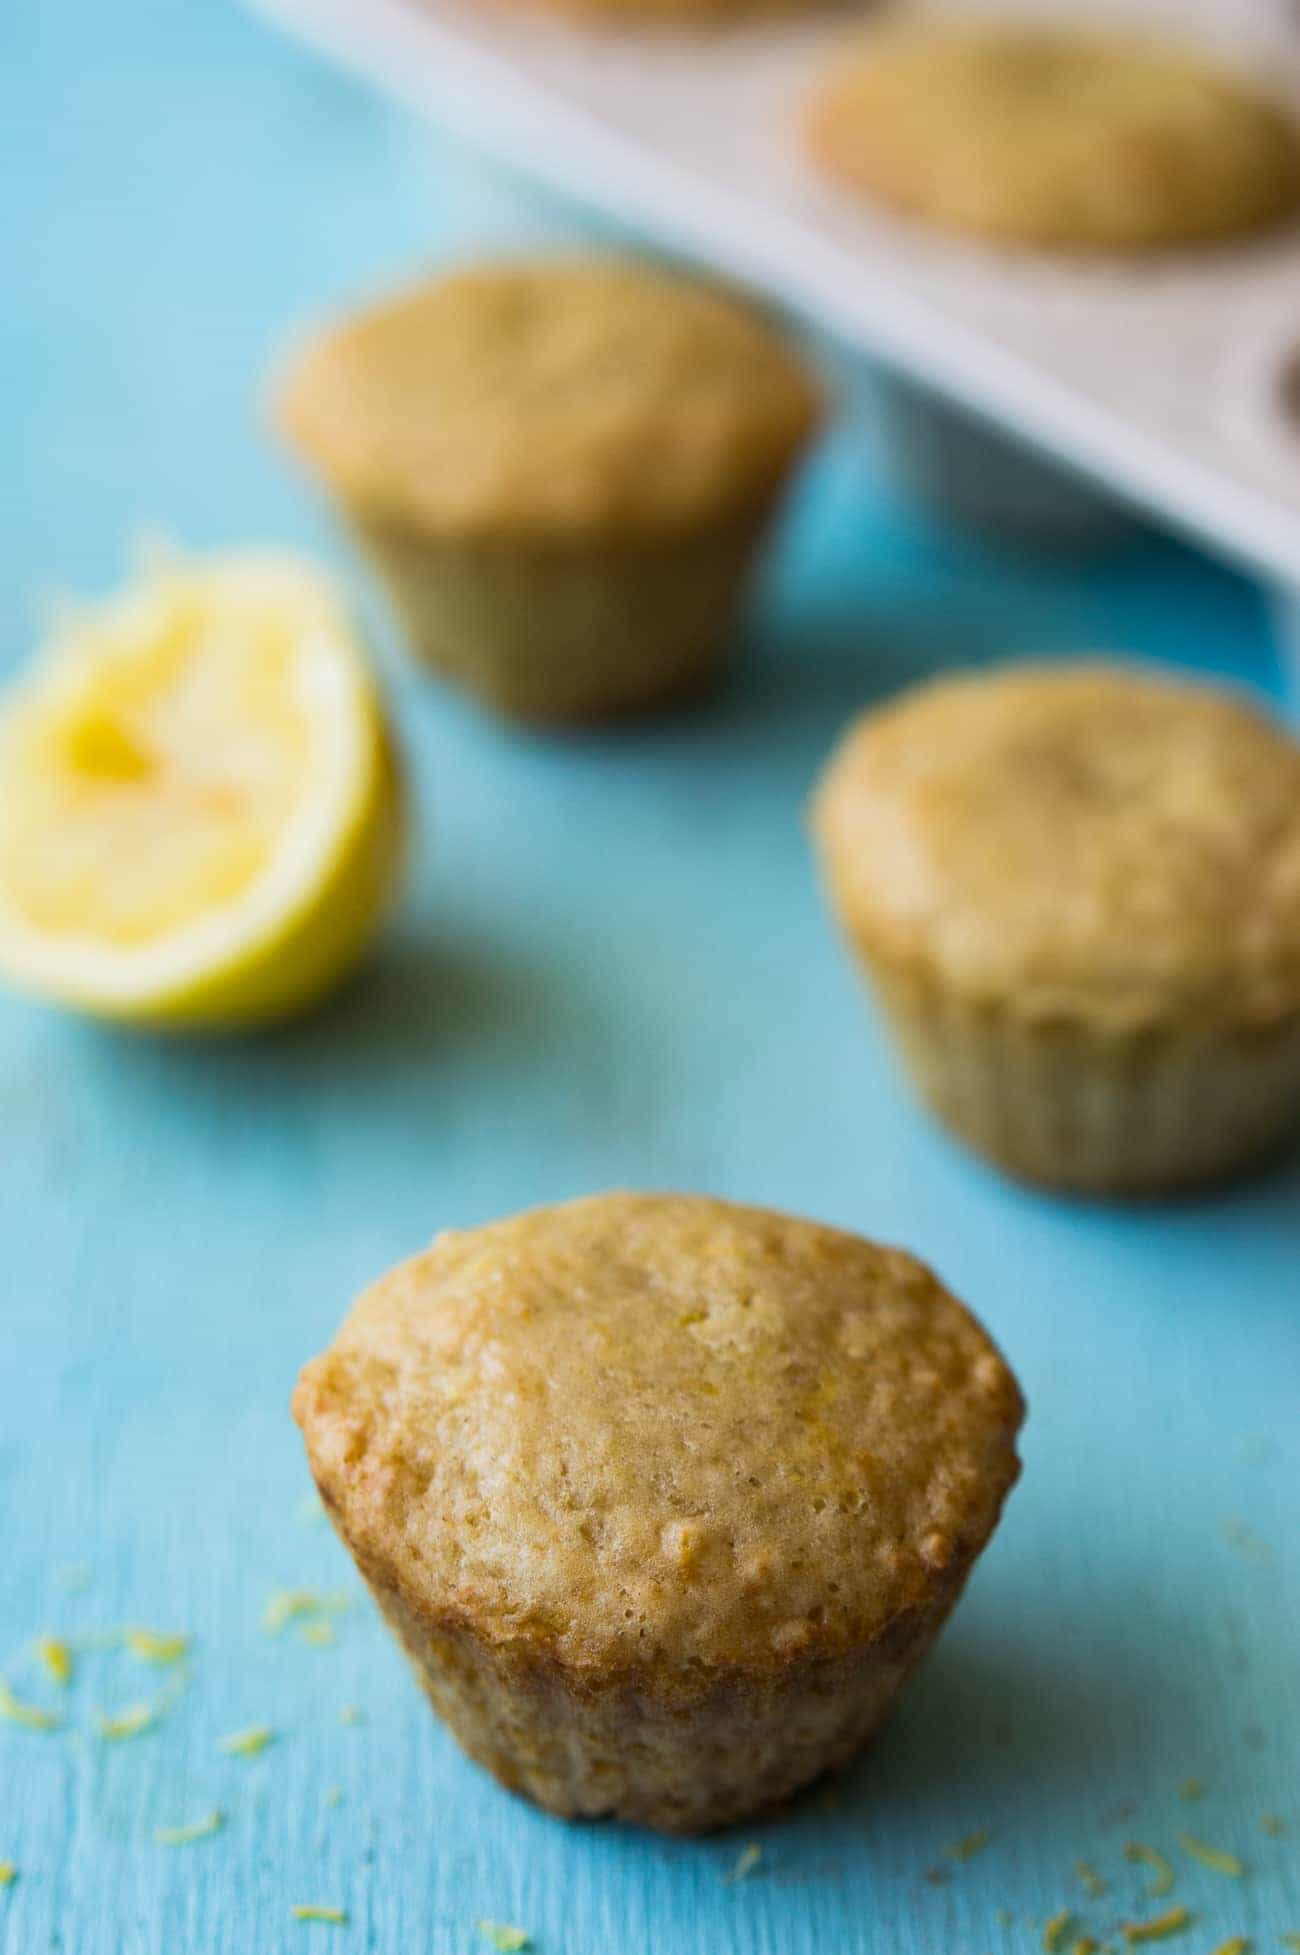 This small batch of healthier lemon muffins will definitely brighten up your breakfast in the morning. Made with whole wheat flour, greek yogurt, and fresh squeezed lemon juice.